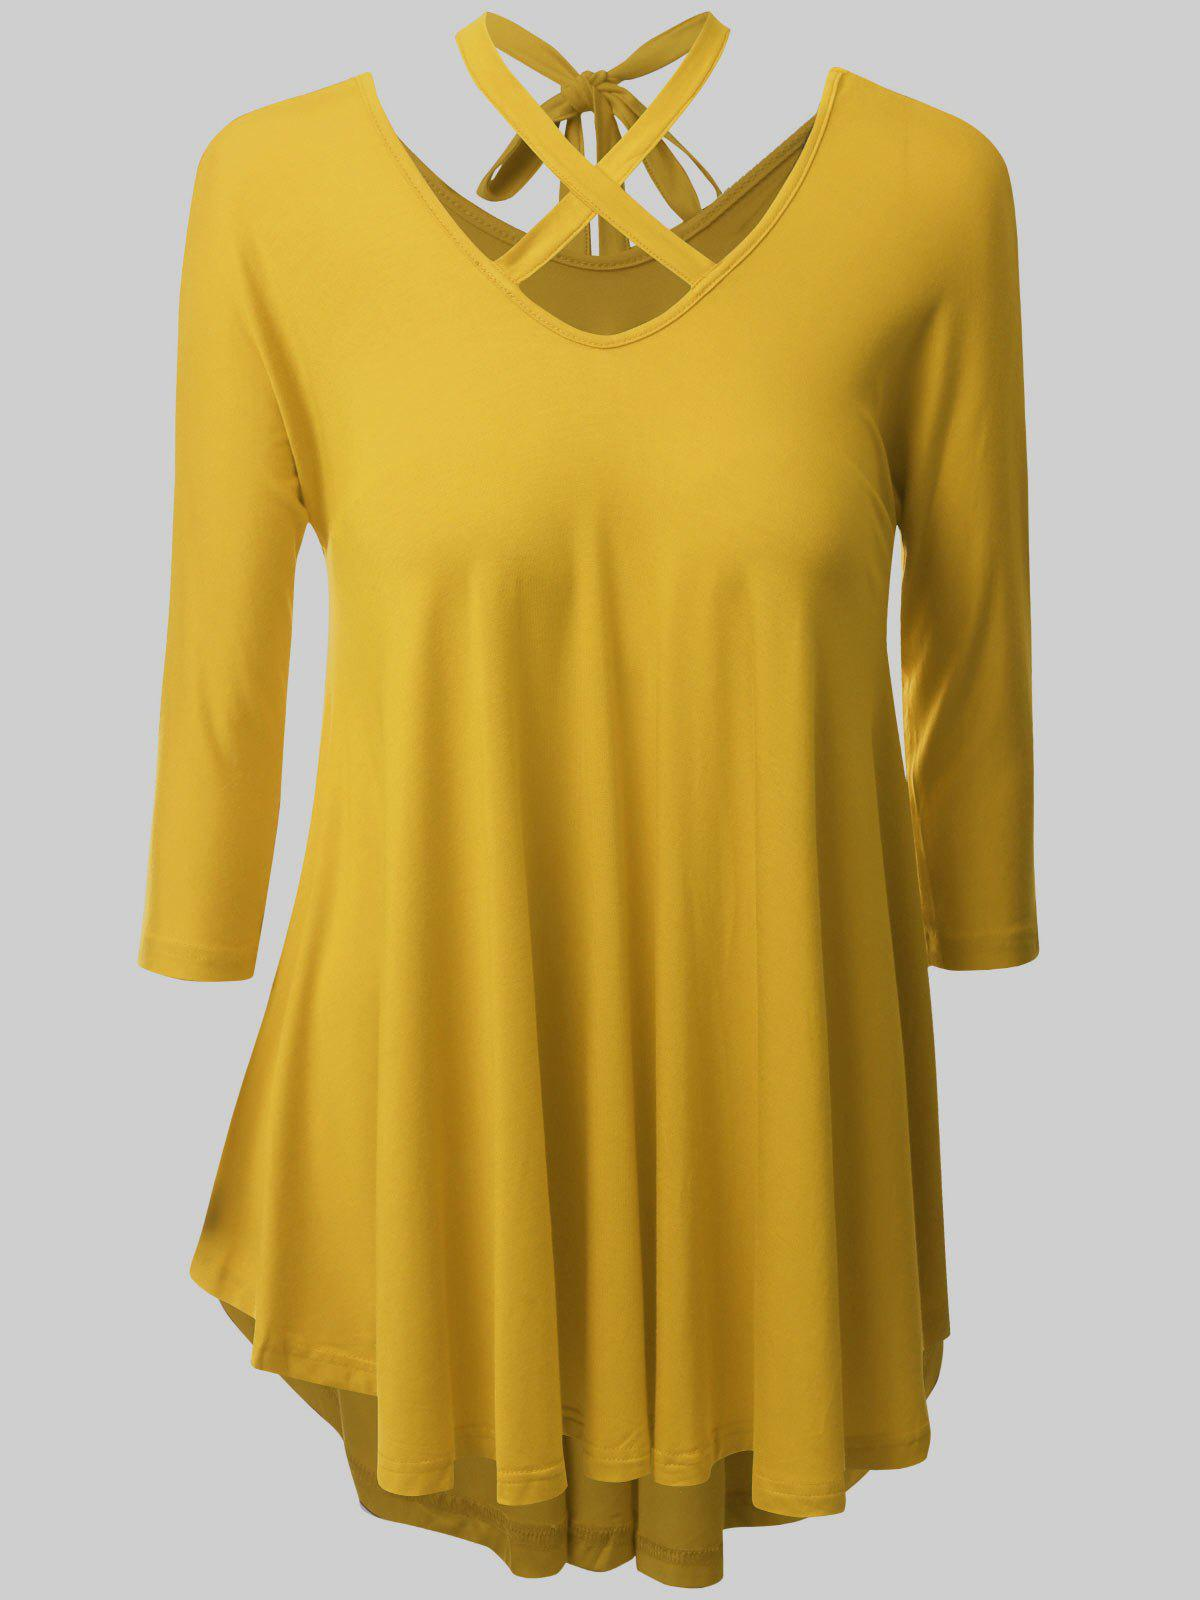 Plus Size Criss Cross High Low Tee - YELLOW 4XL